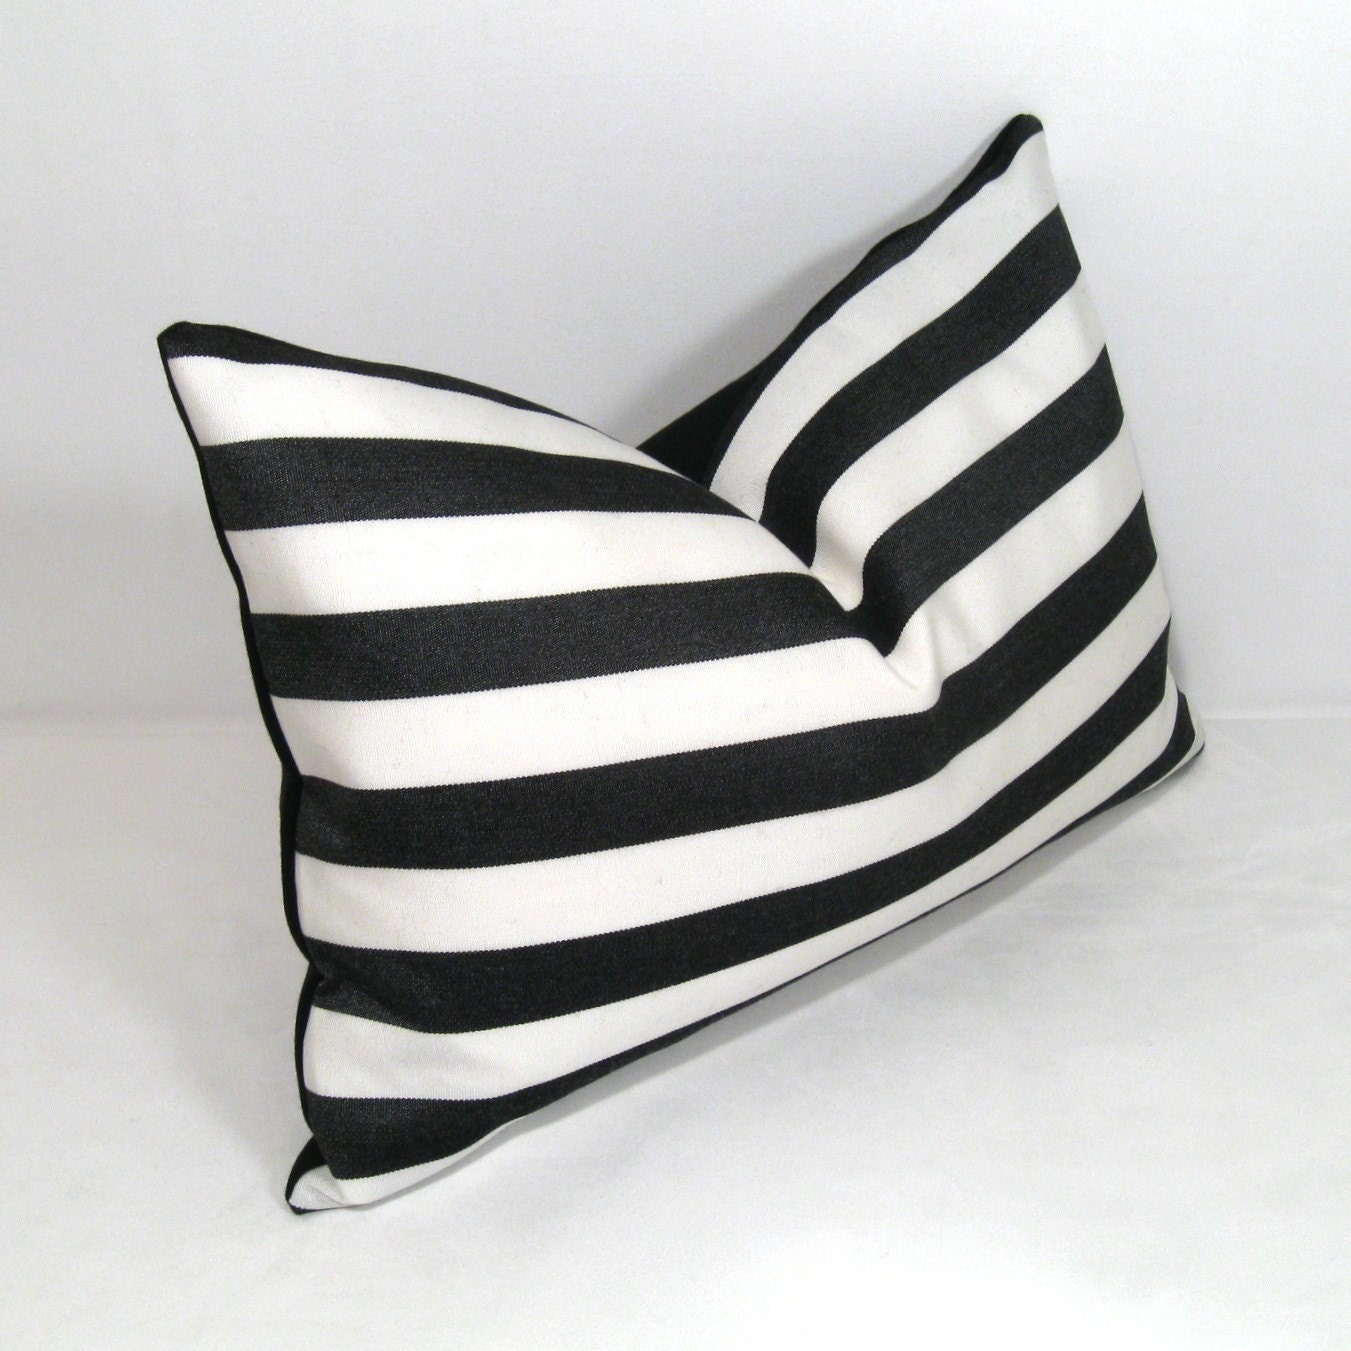 Black and White Pillow Cover - Decorative Striped Outdoor Cushion - Modern Sunbrella 12x18 inch - Mazizmuse